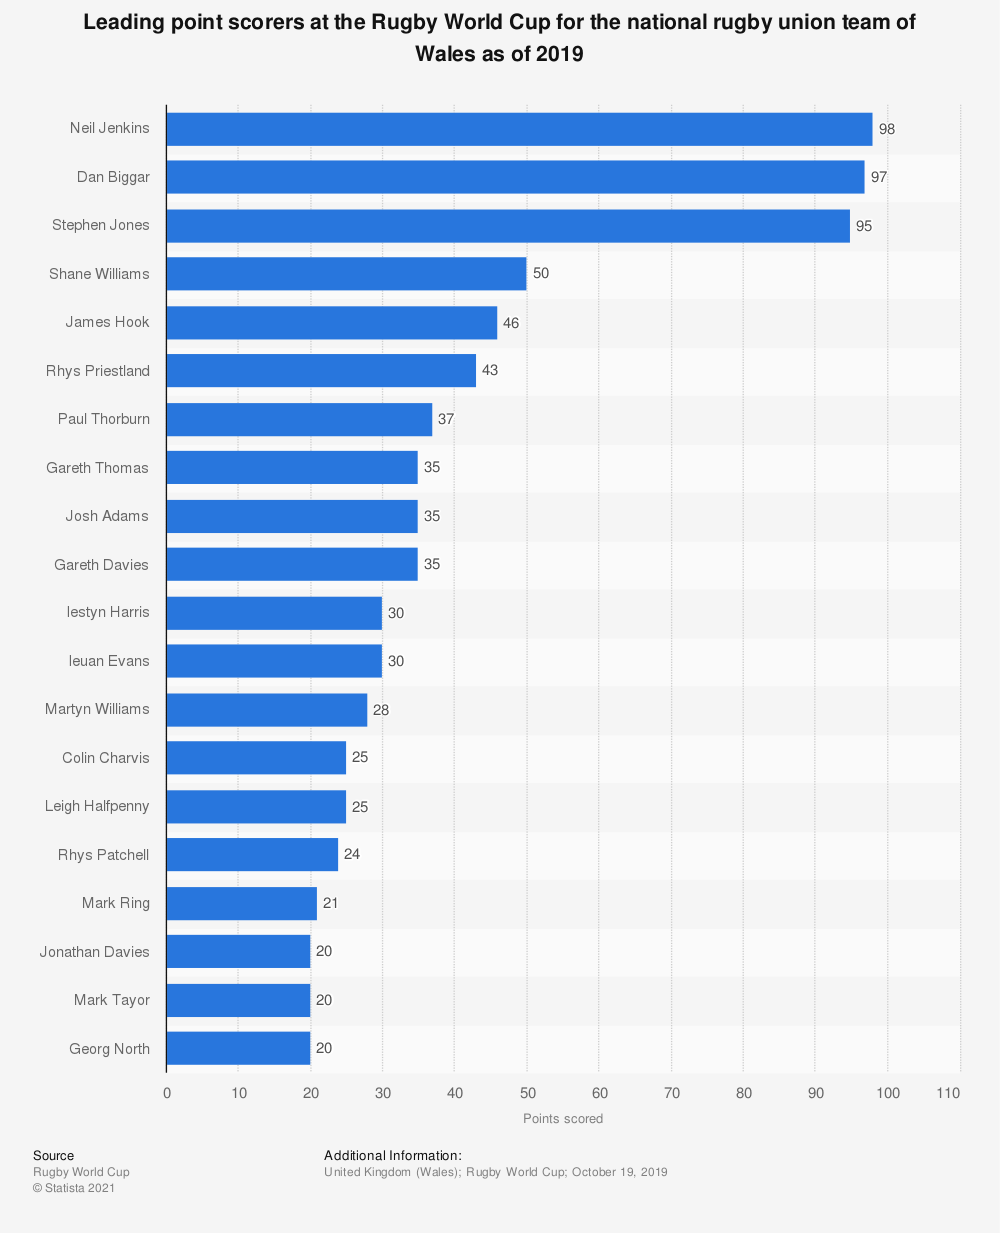 Statistic: Leading point scorers at the Rugby World Cup for the national rugby union team of Wales as of 2019 | Statista